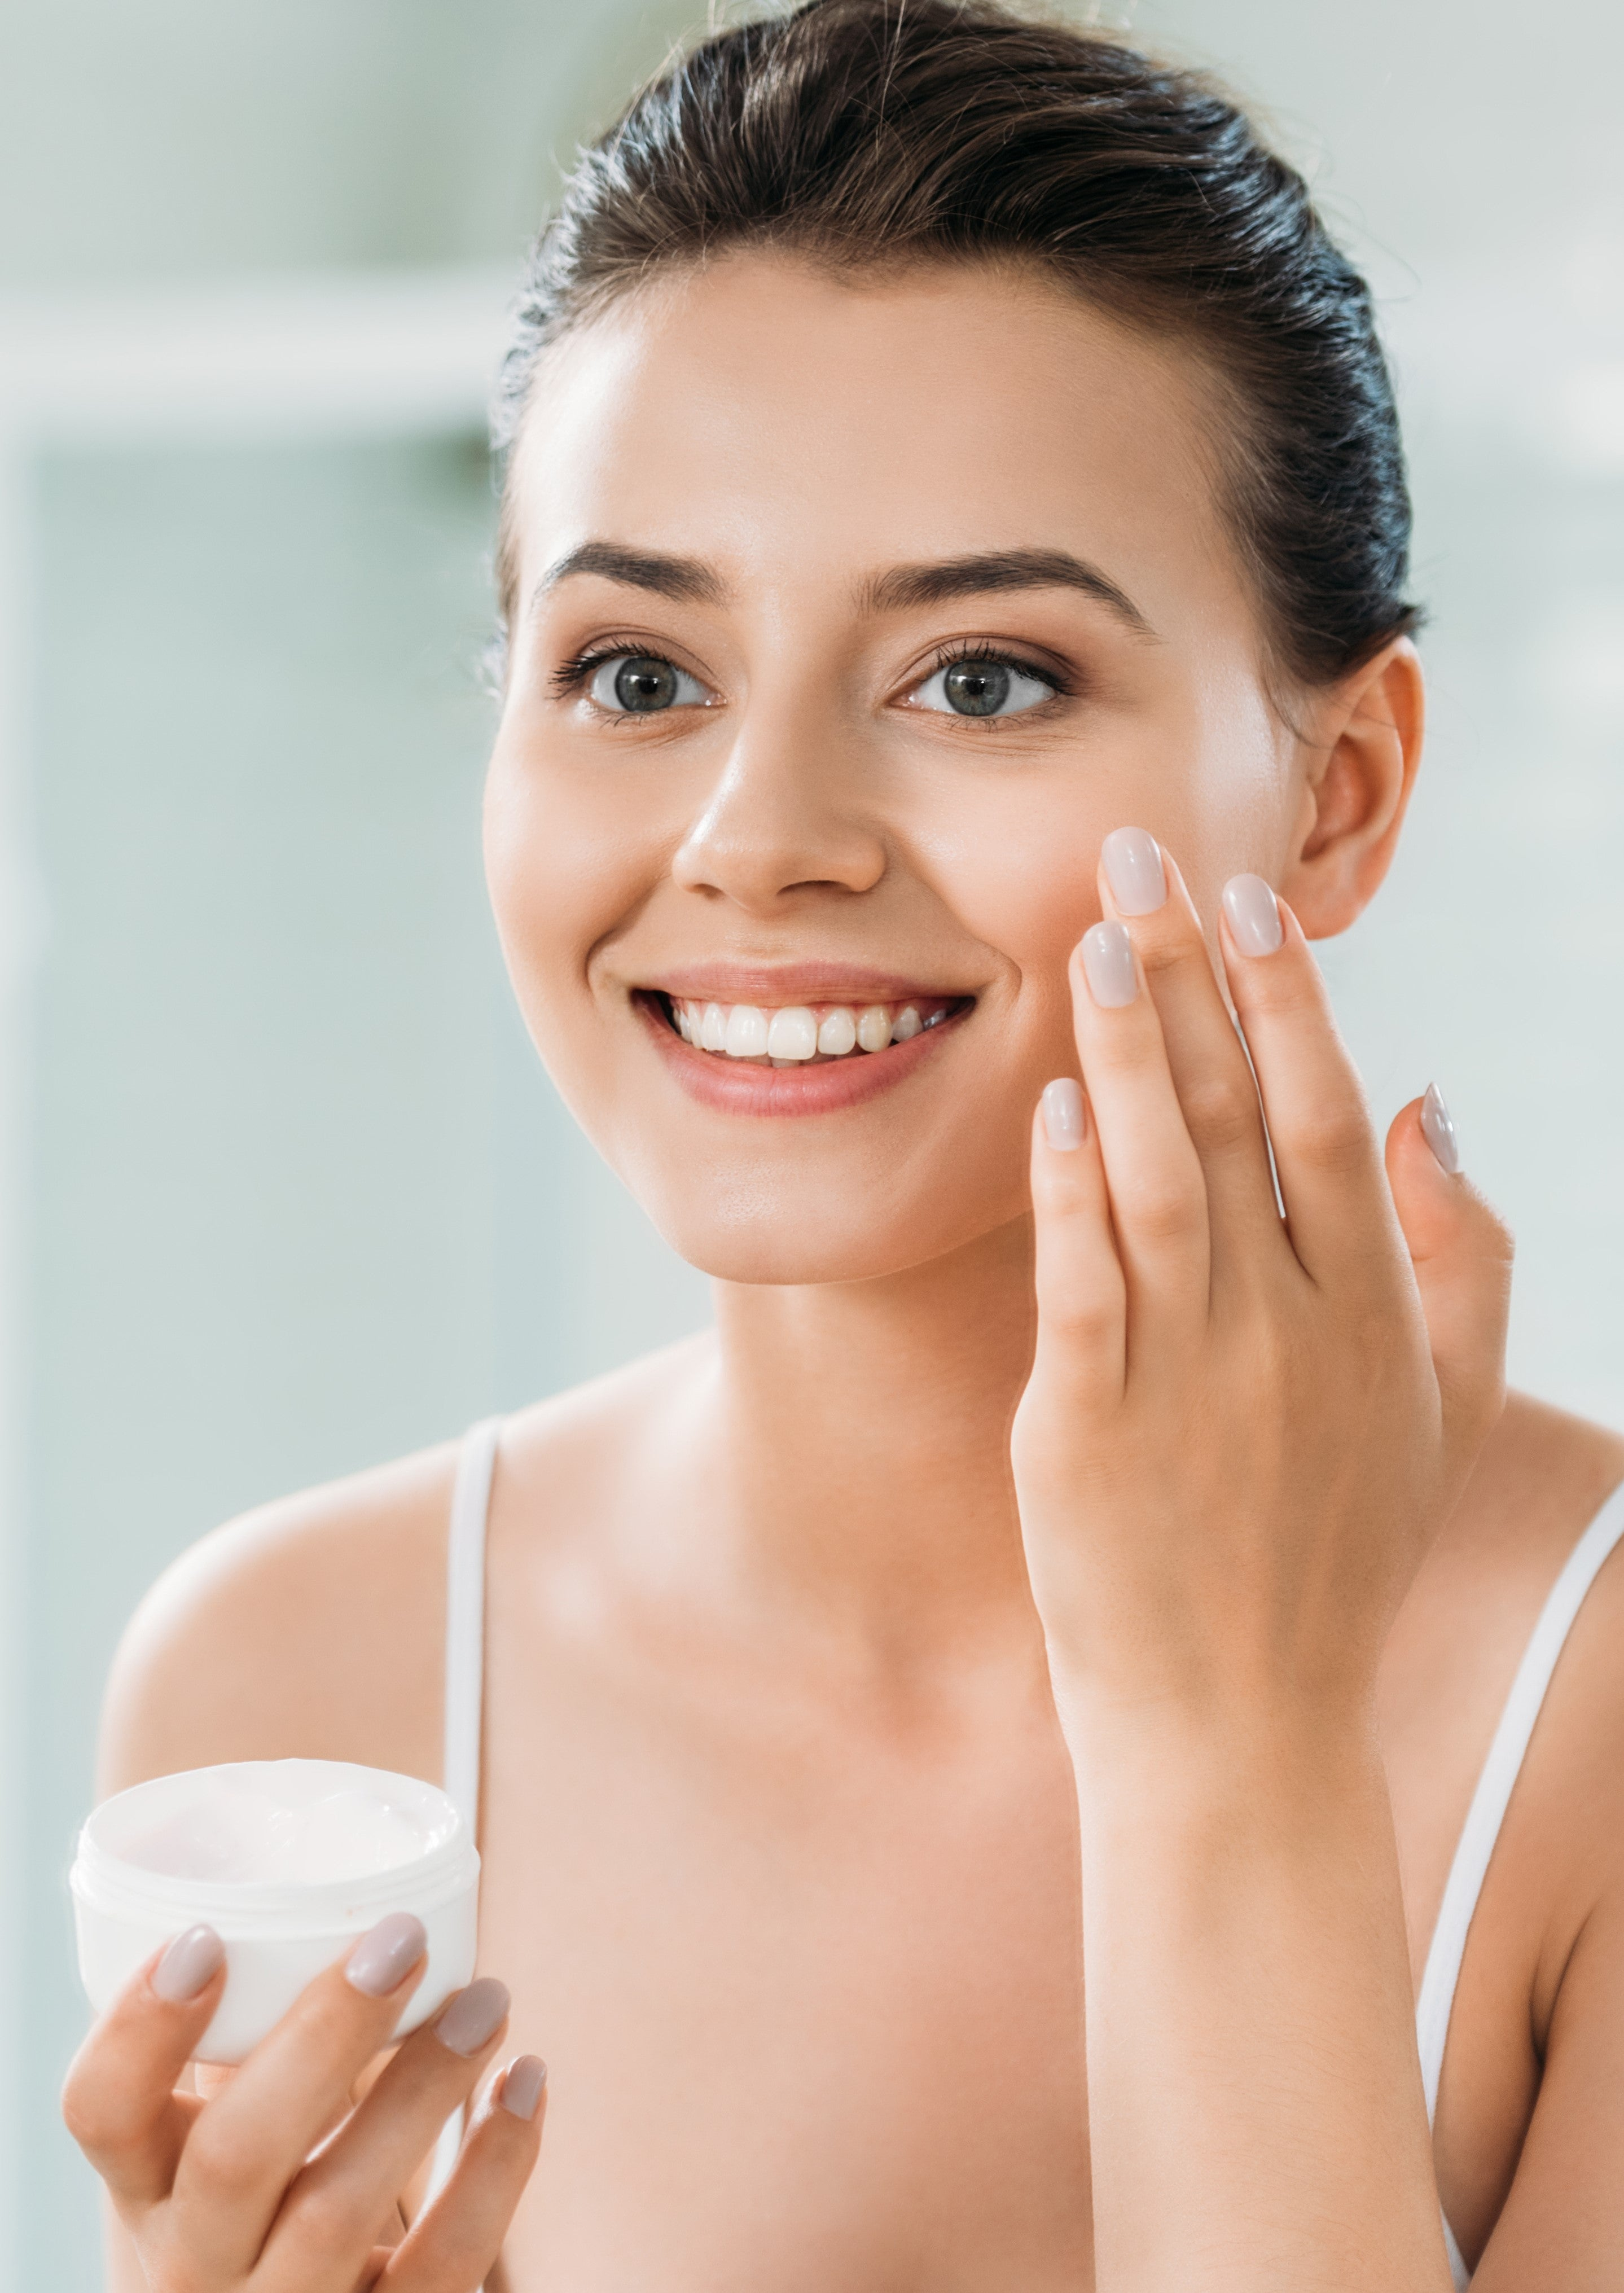 best skin care to prevent maskne breakouts and use under your face mask to prevent maskne